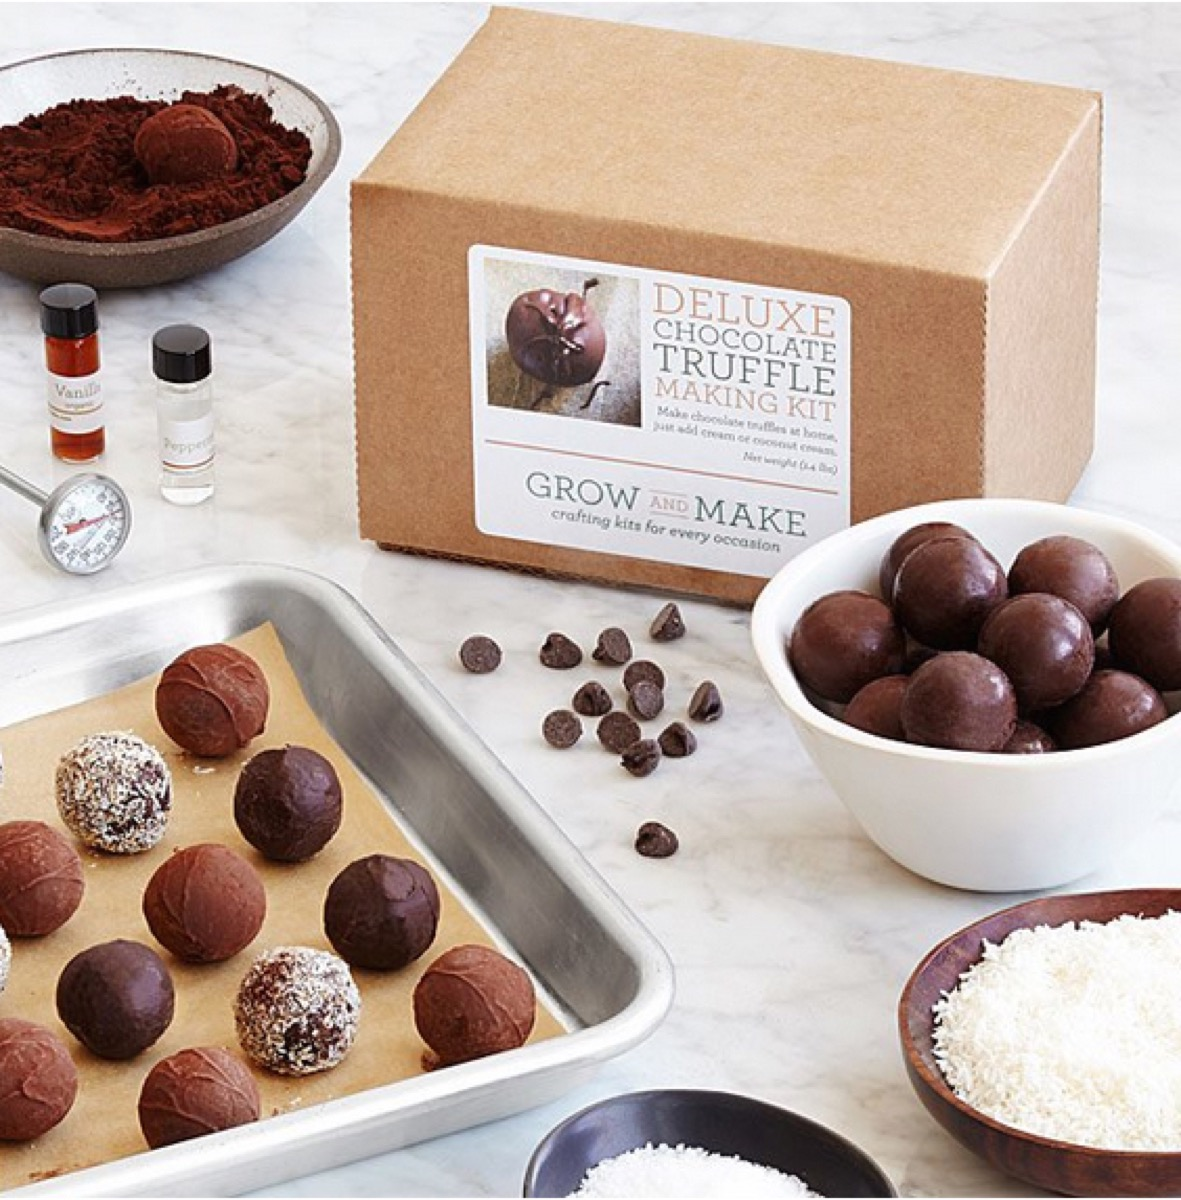 pan of chocolate truffles next to a white bowl of truffles and brown cardboard box